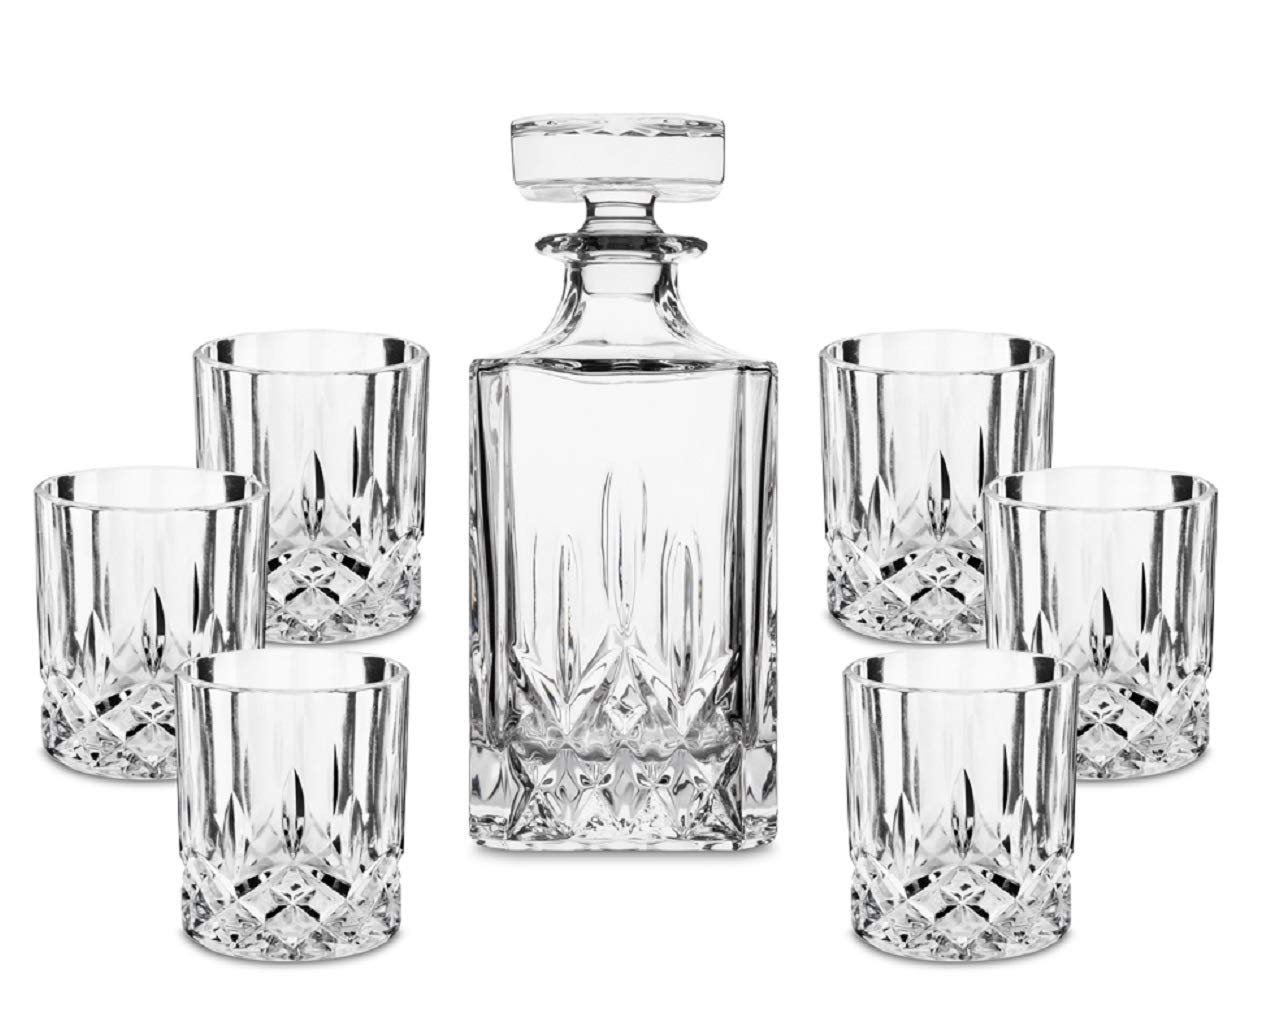 7- Piece European Style Lead Free Crystal Whiskey Decanter Set, Premium Liquor Decanter Comes with 6 Matching Scotch Glasses Best for Bourbon, Whisky and Alcohol